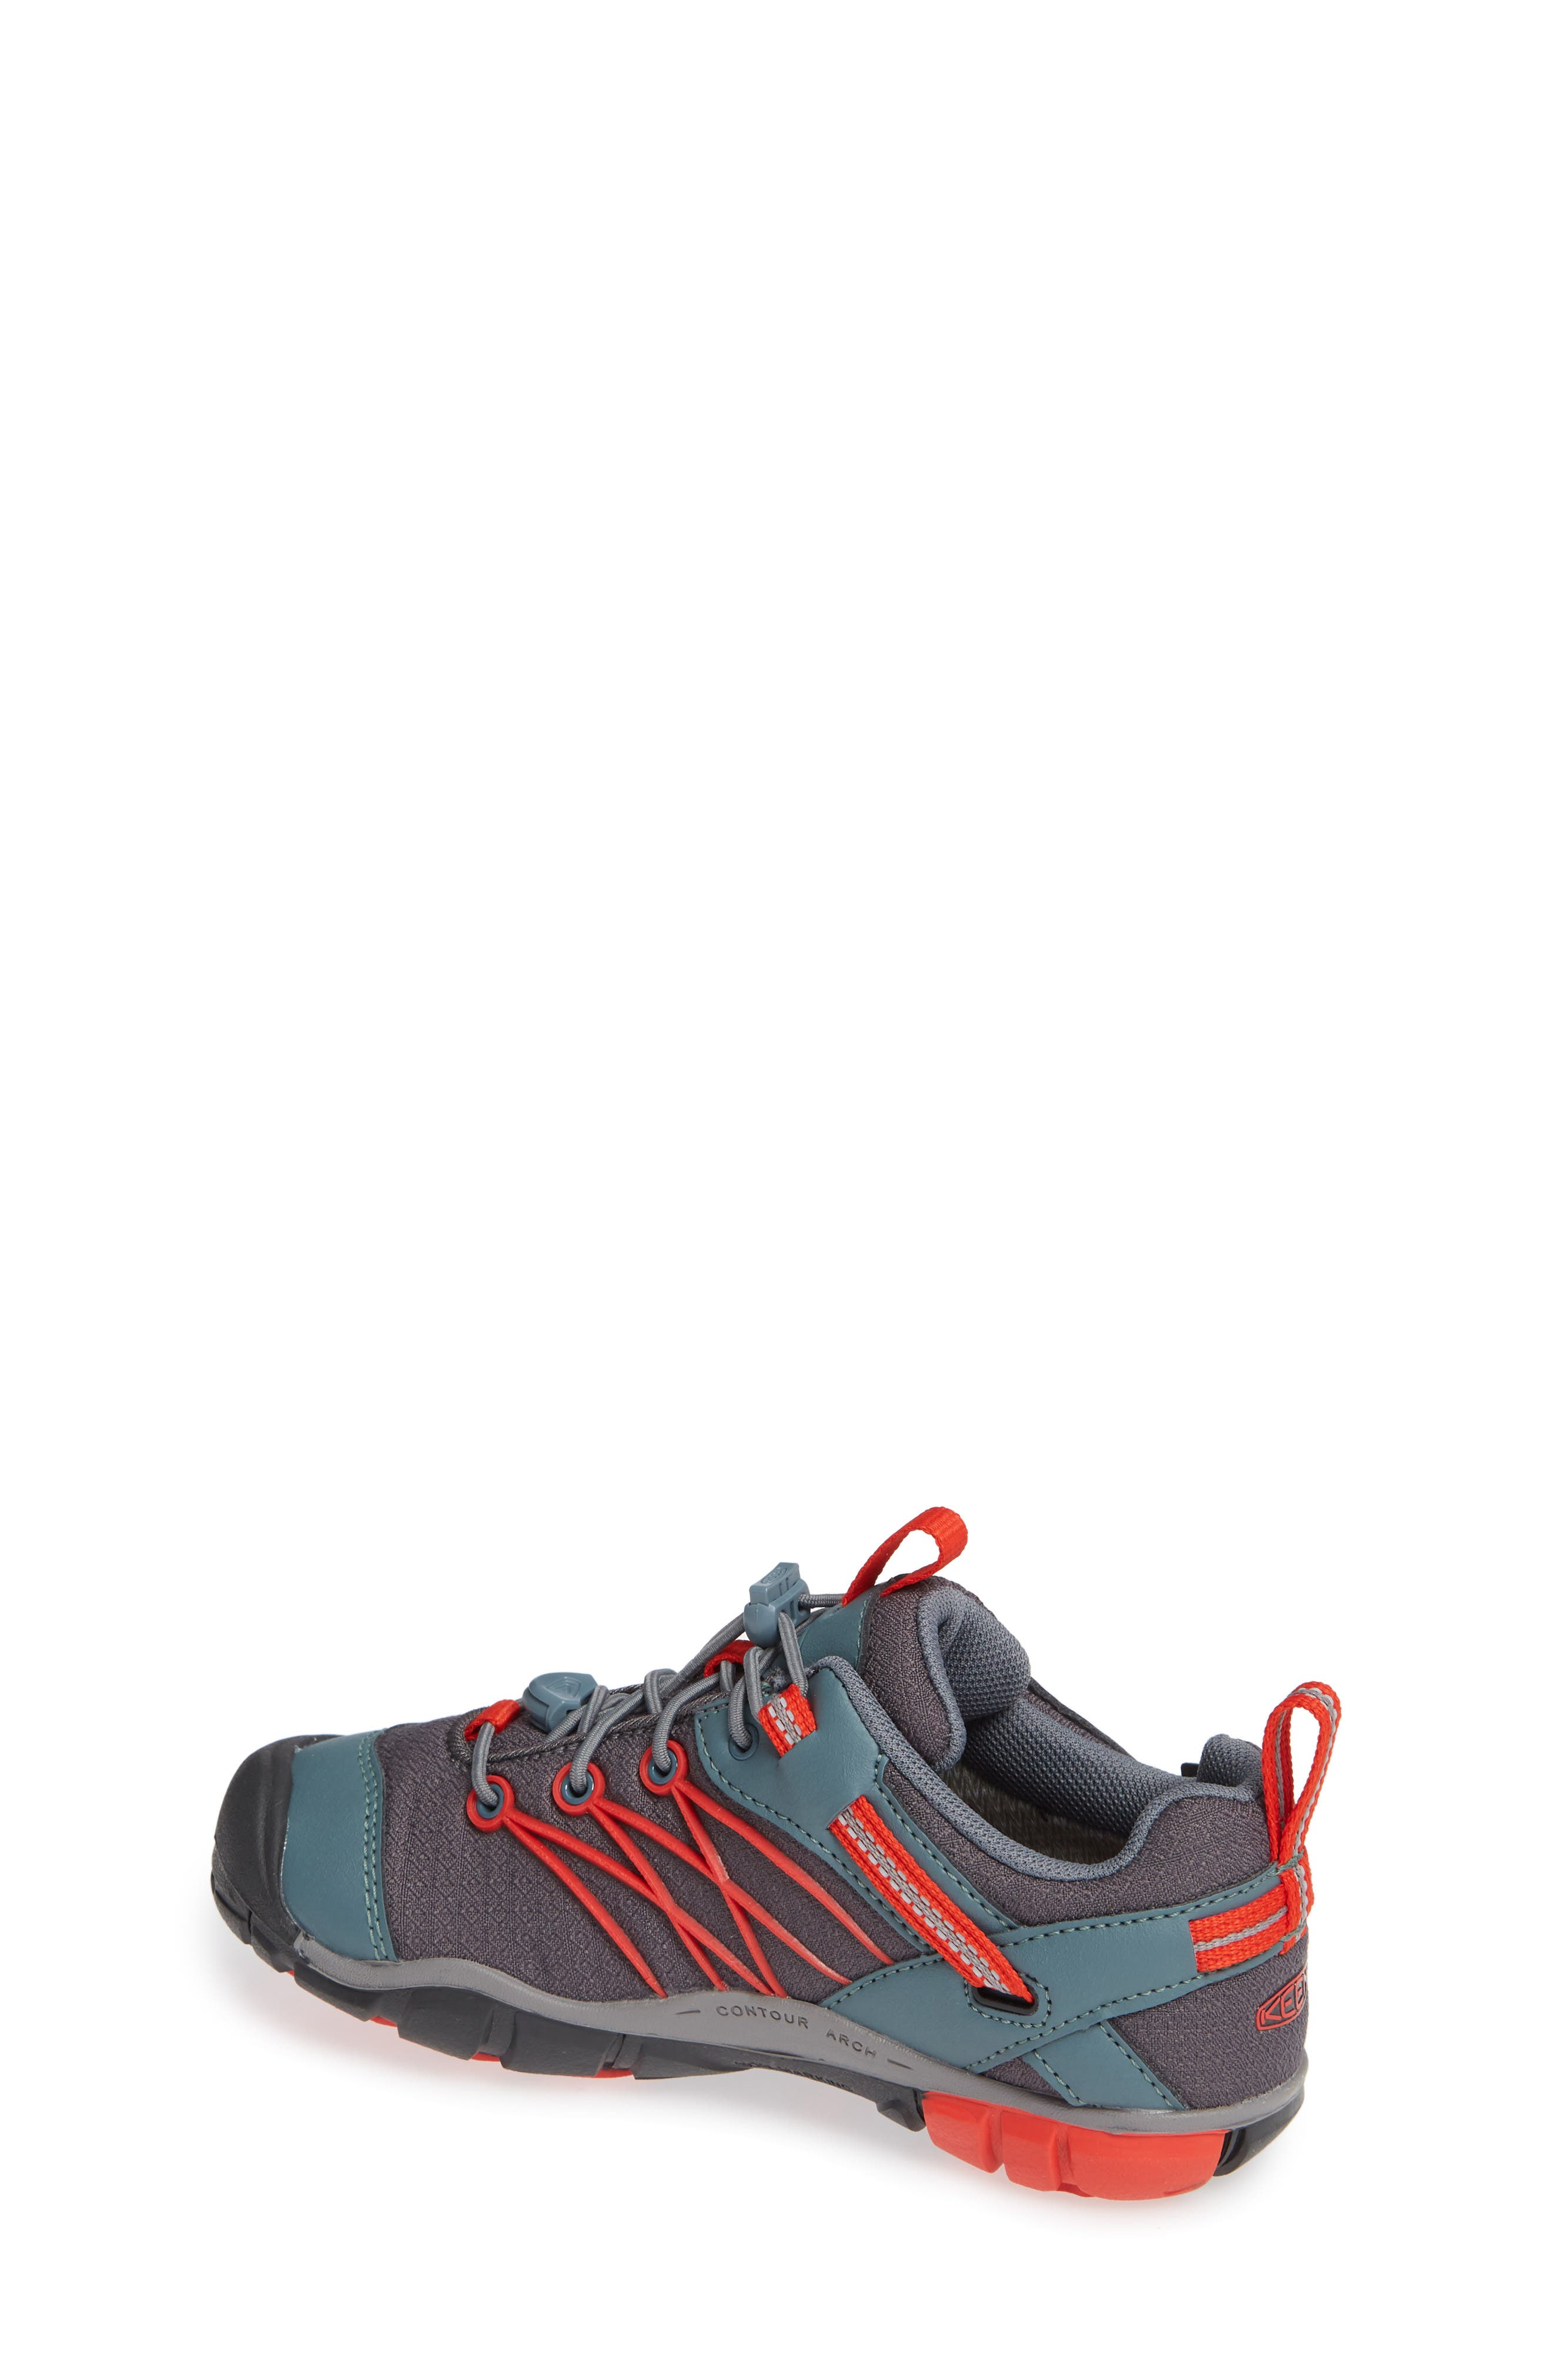 Chandler CNX Waterproof Sneaker,                             Alternate thumbnail 2, color,                             STORMY/ RED